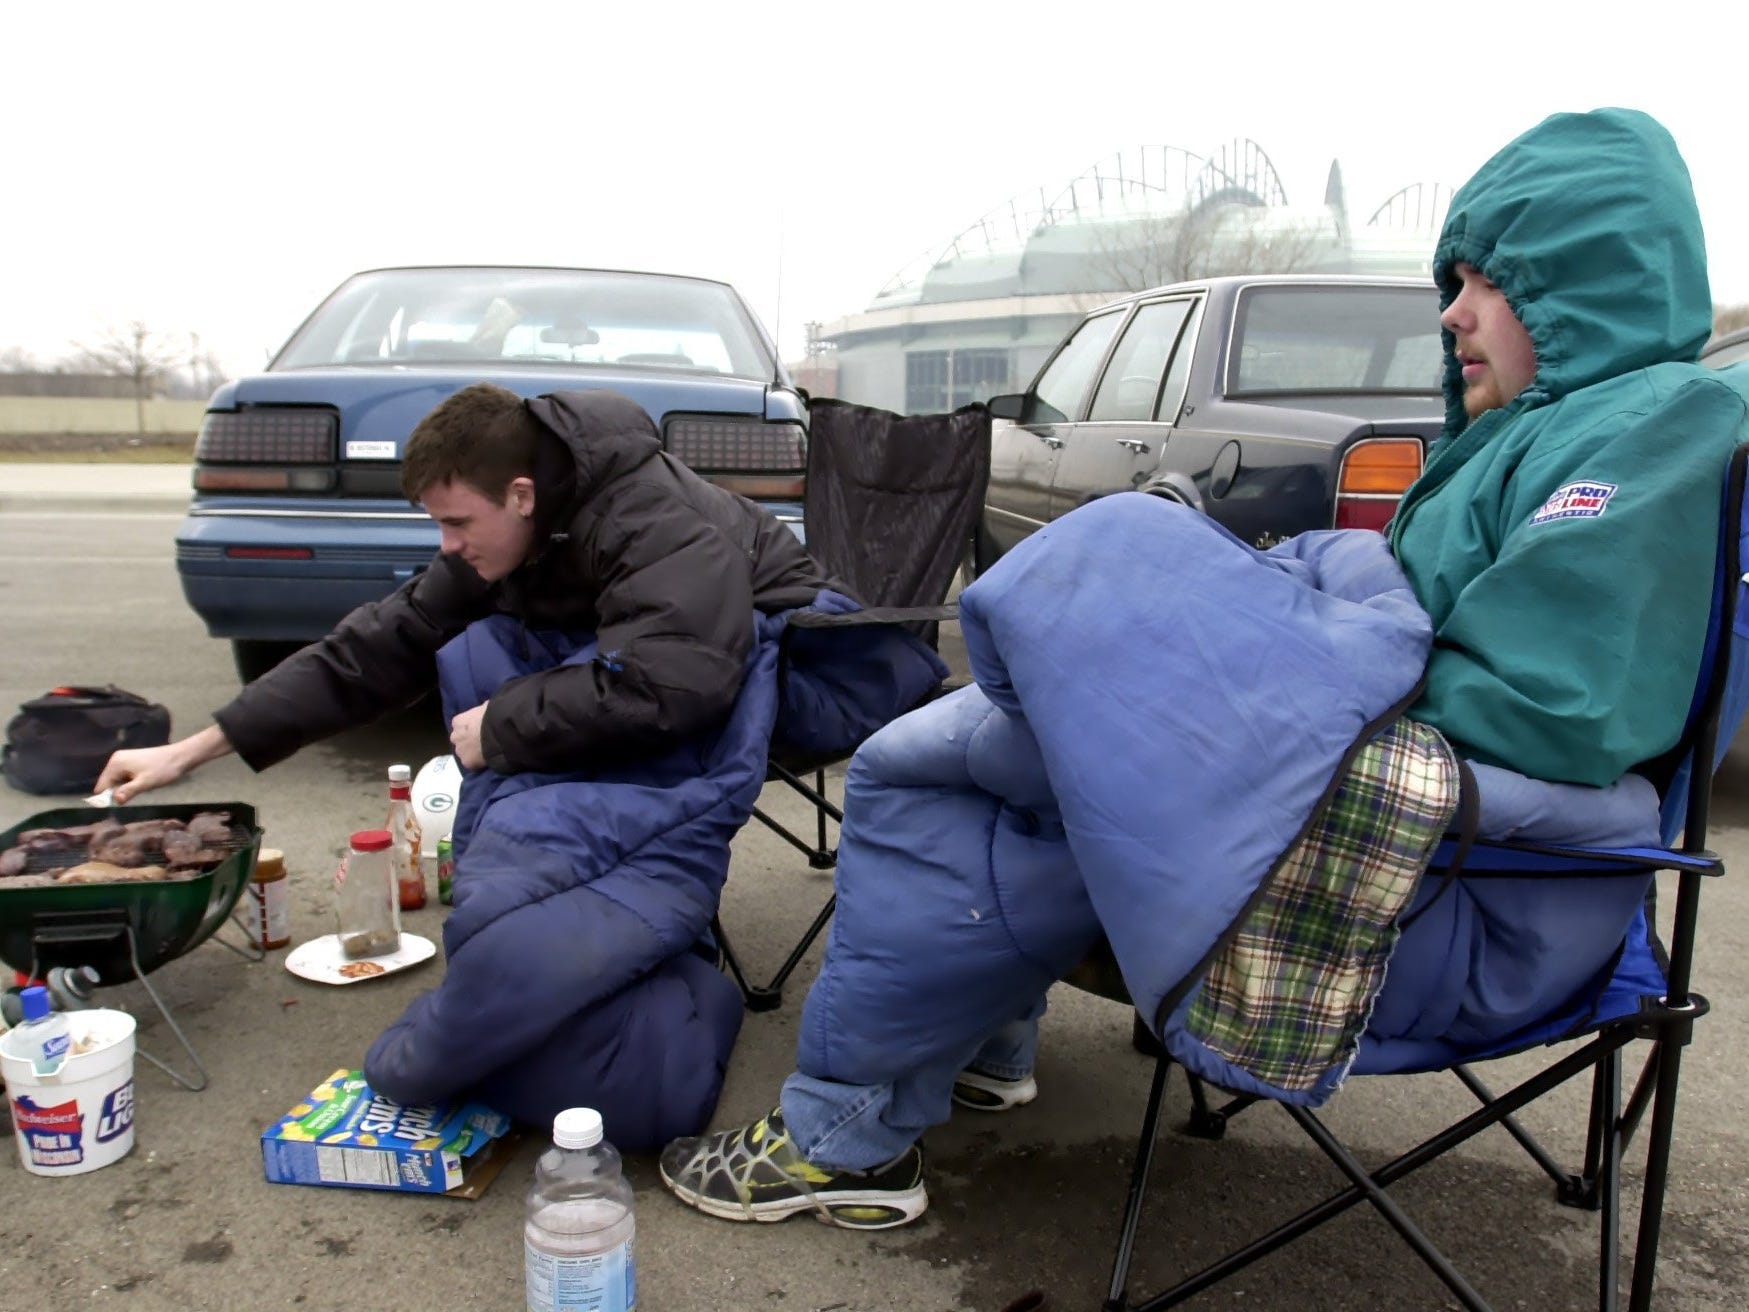 """Miller Park has a retractable roof, but not so the parking lot for tailgaters on April 6, 2001, opening day for the 2001 season. Christopher VerVelde (from left) and Williams Capello tailgate in the parking lot but didn't have tickets for the sold-out game. """"We basically came to grill and have a good time,"""" said Capello.   Inside Miller Park, the Milwaukee Brewers beat the Cincinnati Reds, 5-4."""